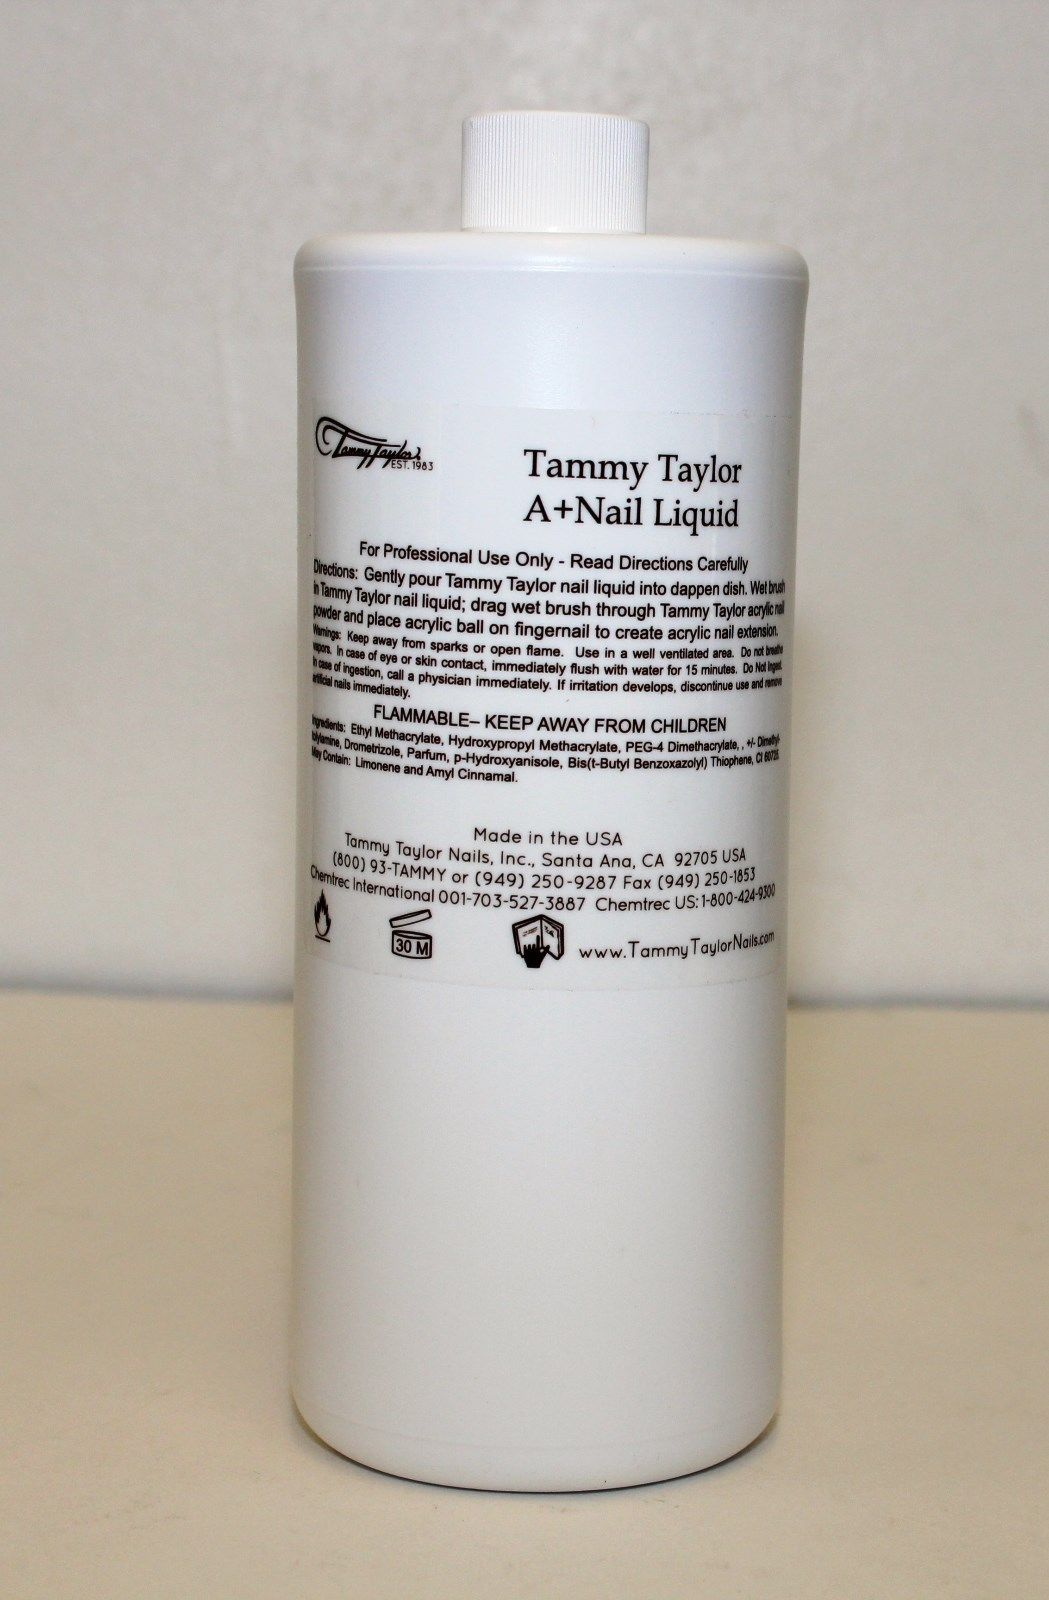 Tammy Taylor Nails - Manicure Pedicure Acrylic Nail Liquid A+ - 32 fl. oz (For Pink & White)